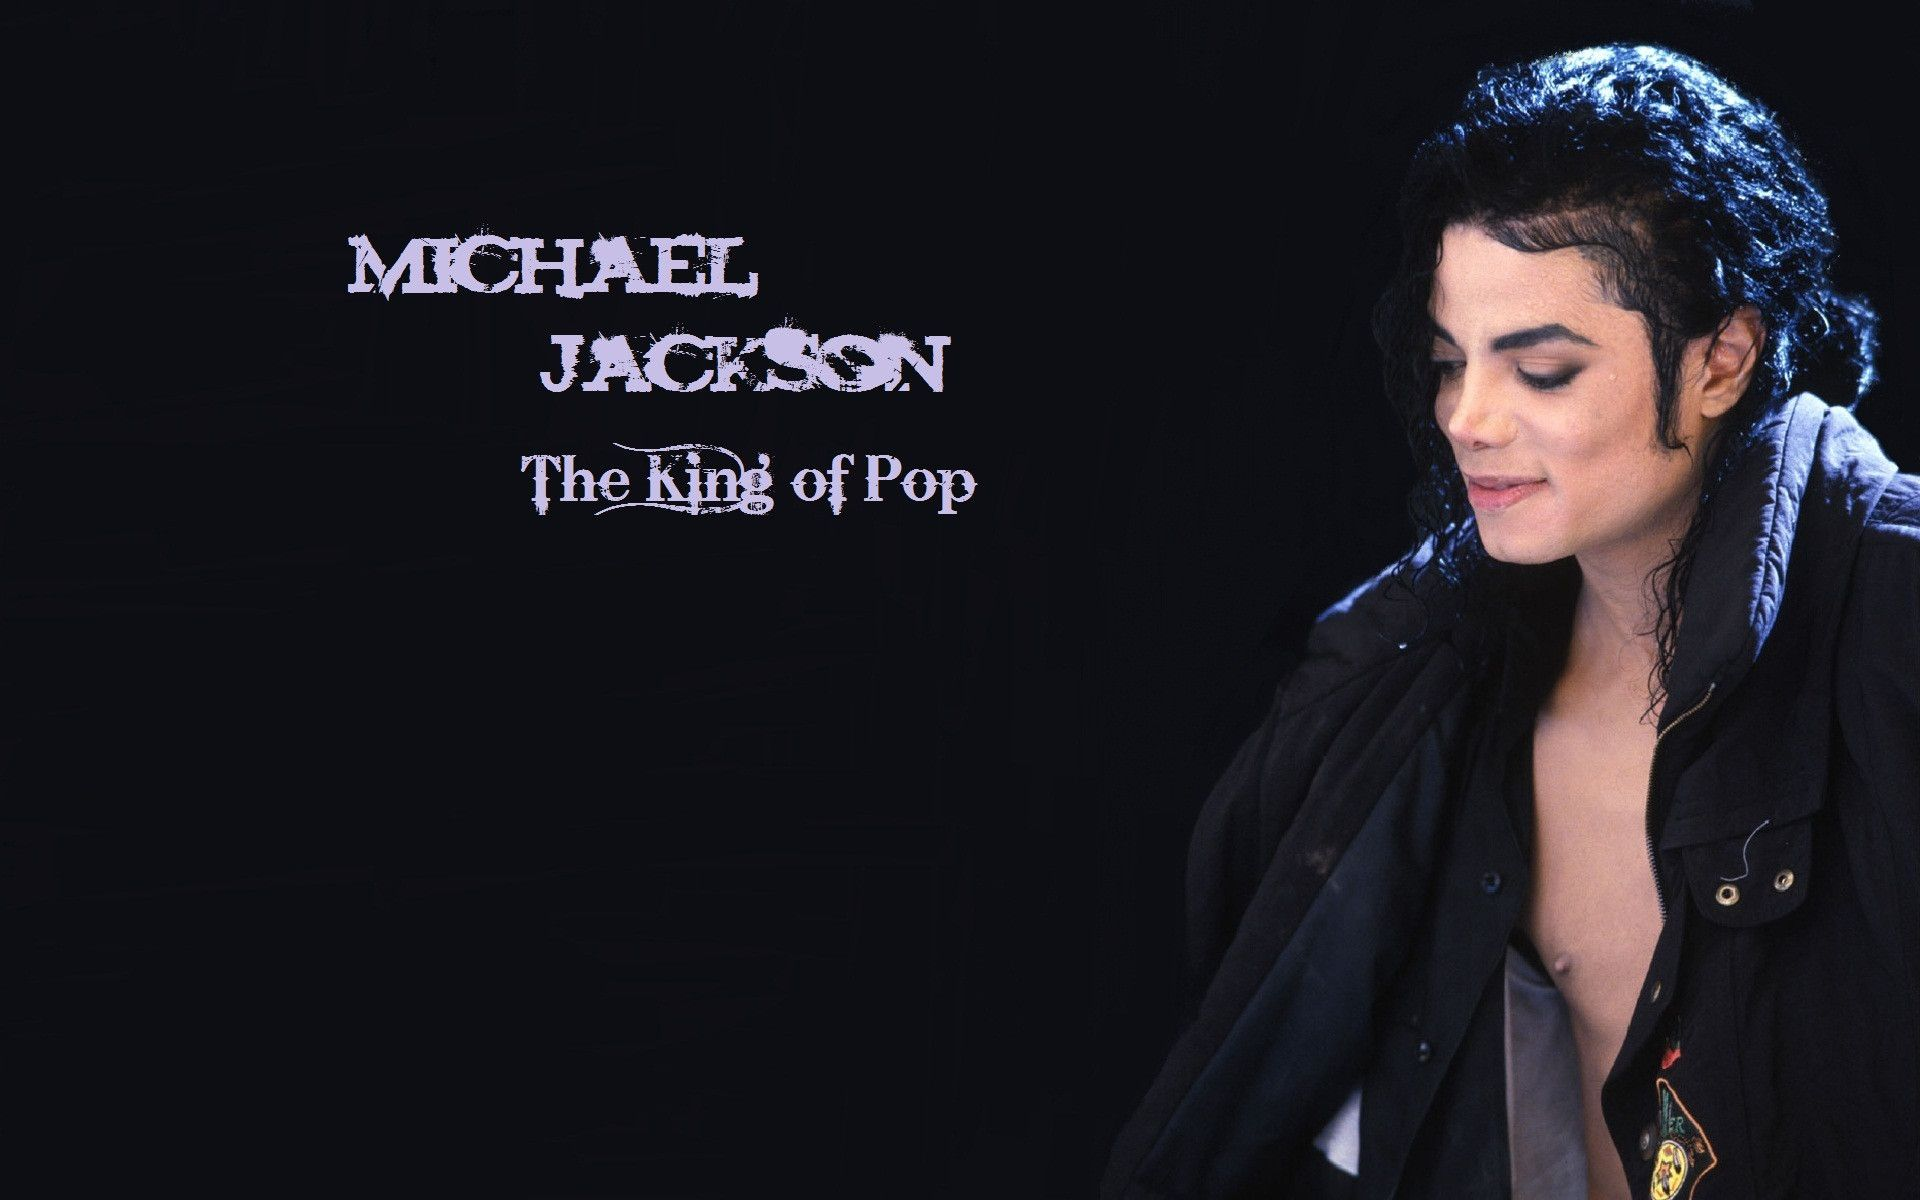 Of pdf jackson biography michael